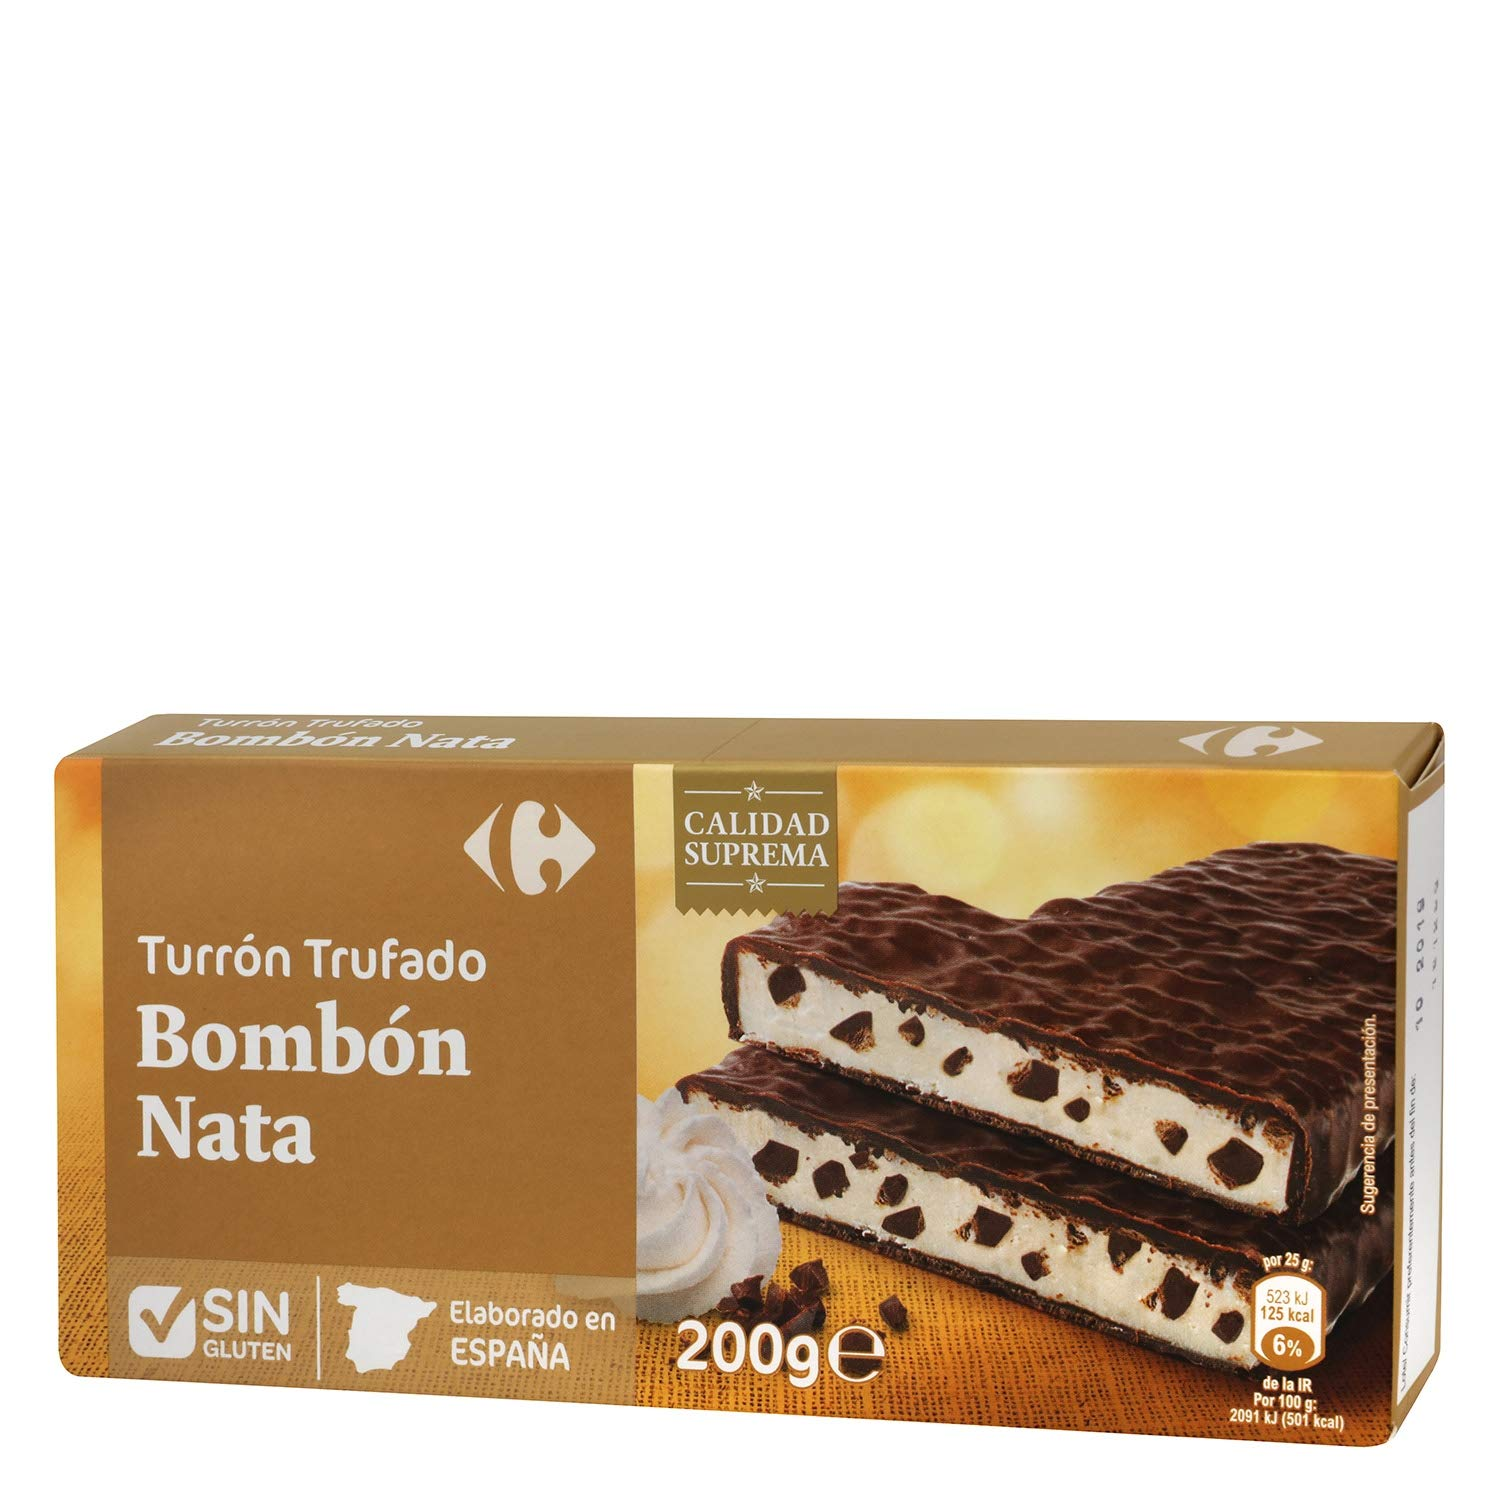 Carrefour Truffled Spanish Nougat with Cream - 5 Pack - Made in Spain - Chocolate & Candy - Traditional & International Sweets - Gluten-Free - Turron: ...